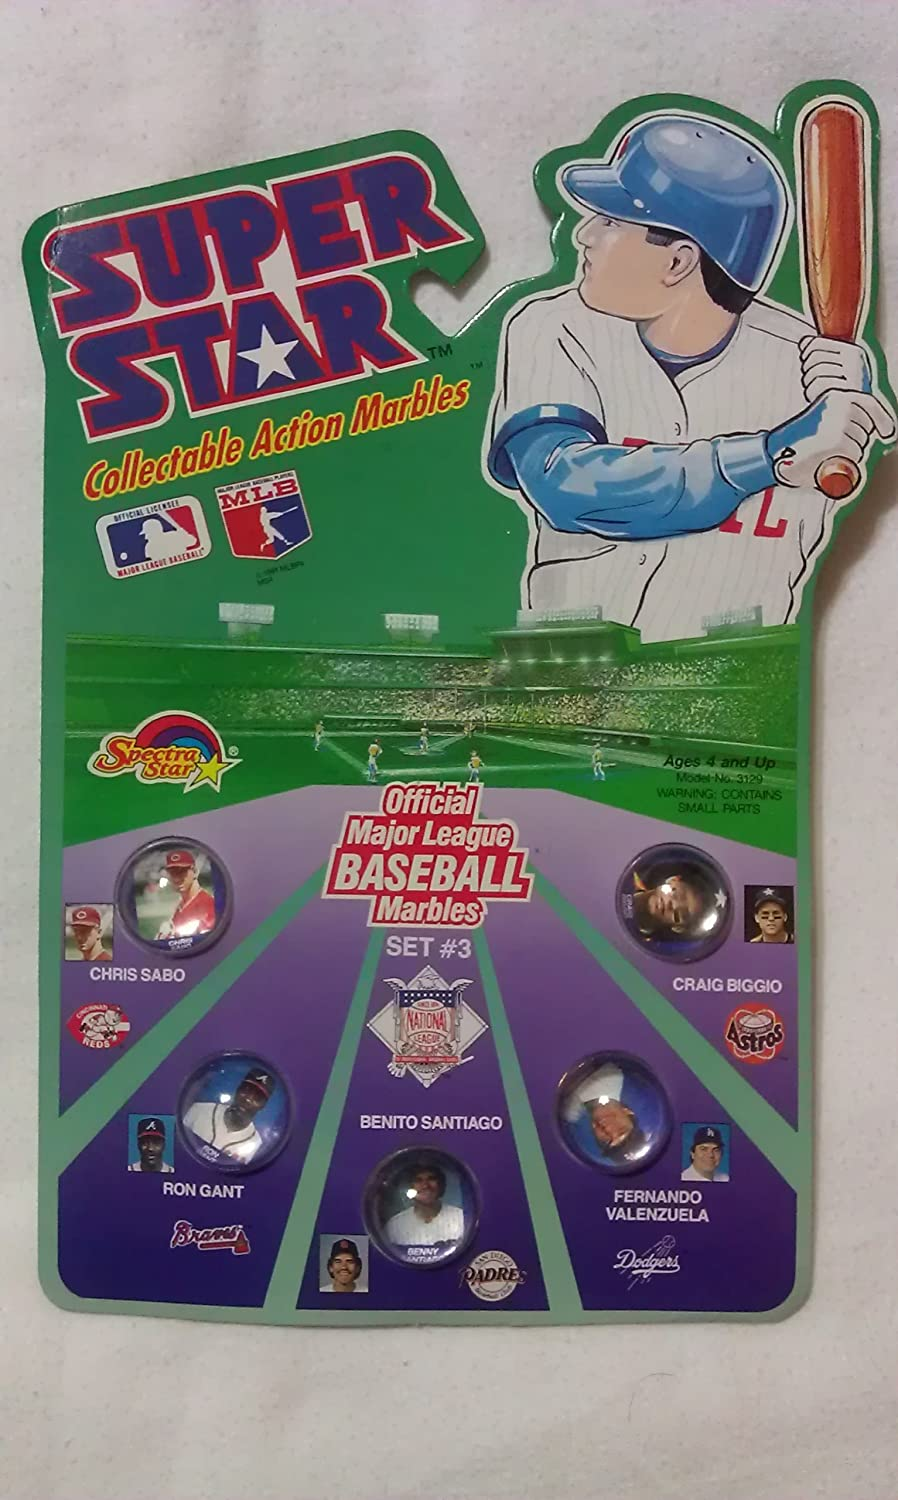 Amazoncom Major League Baseball Super Star Collectible Action